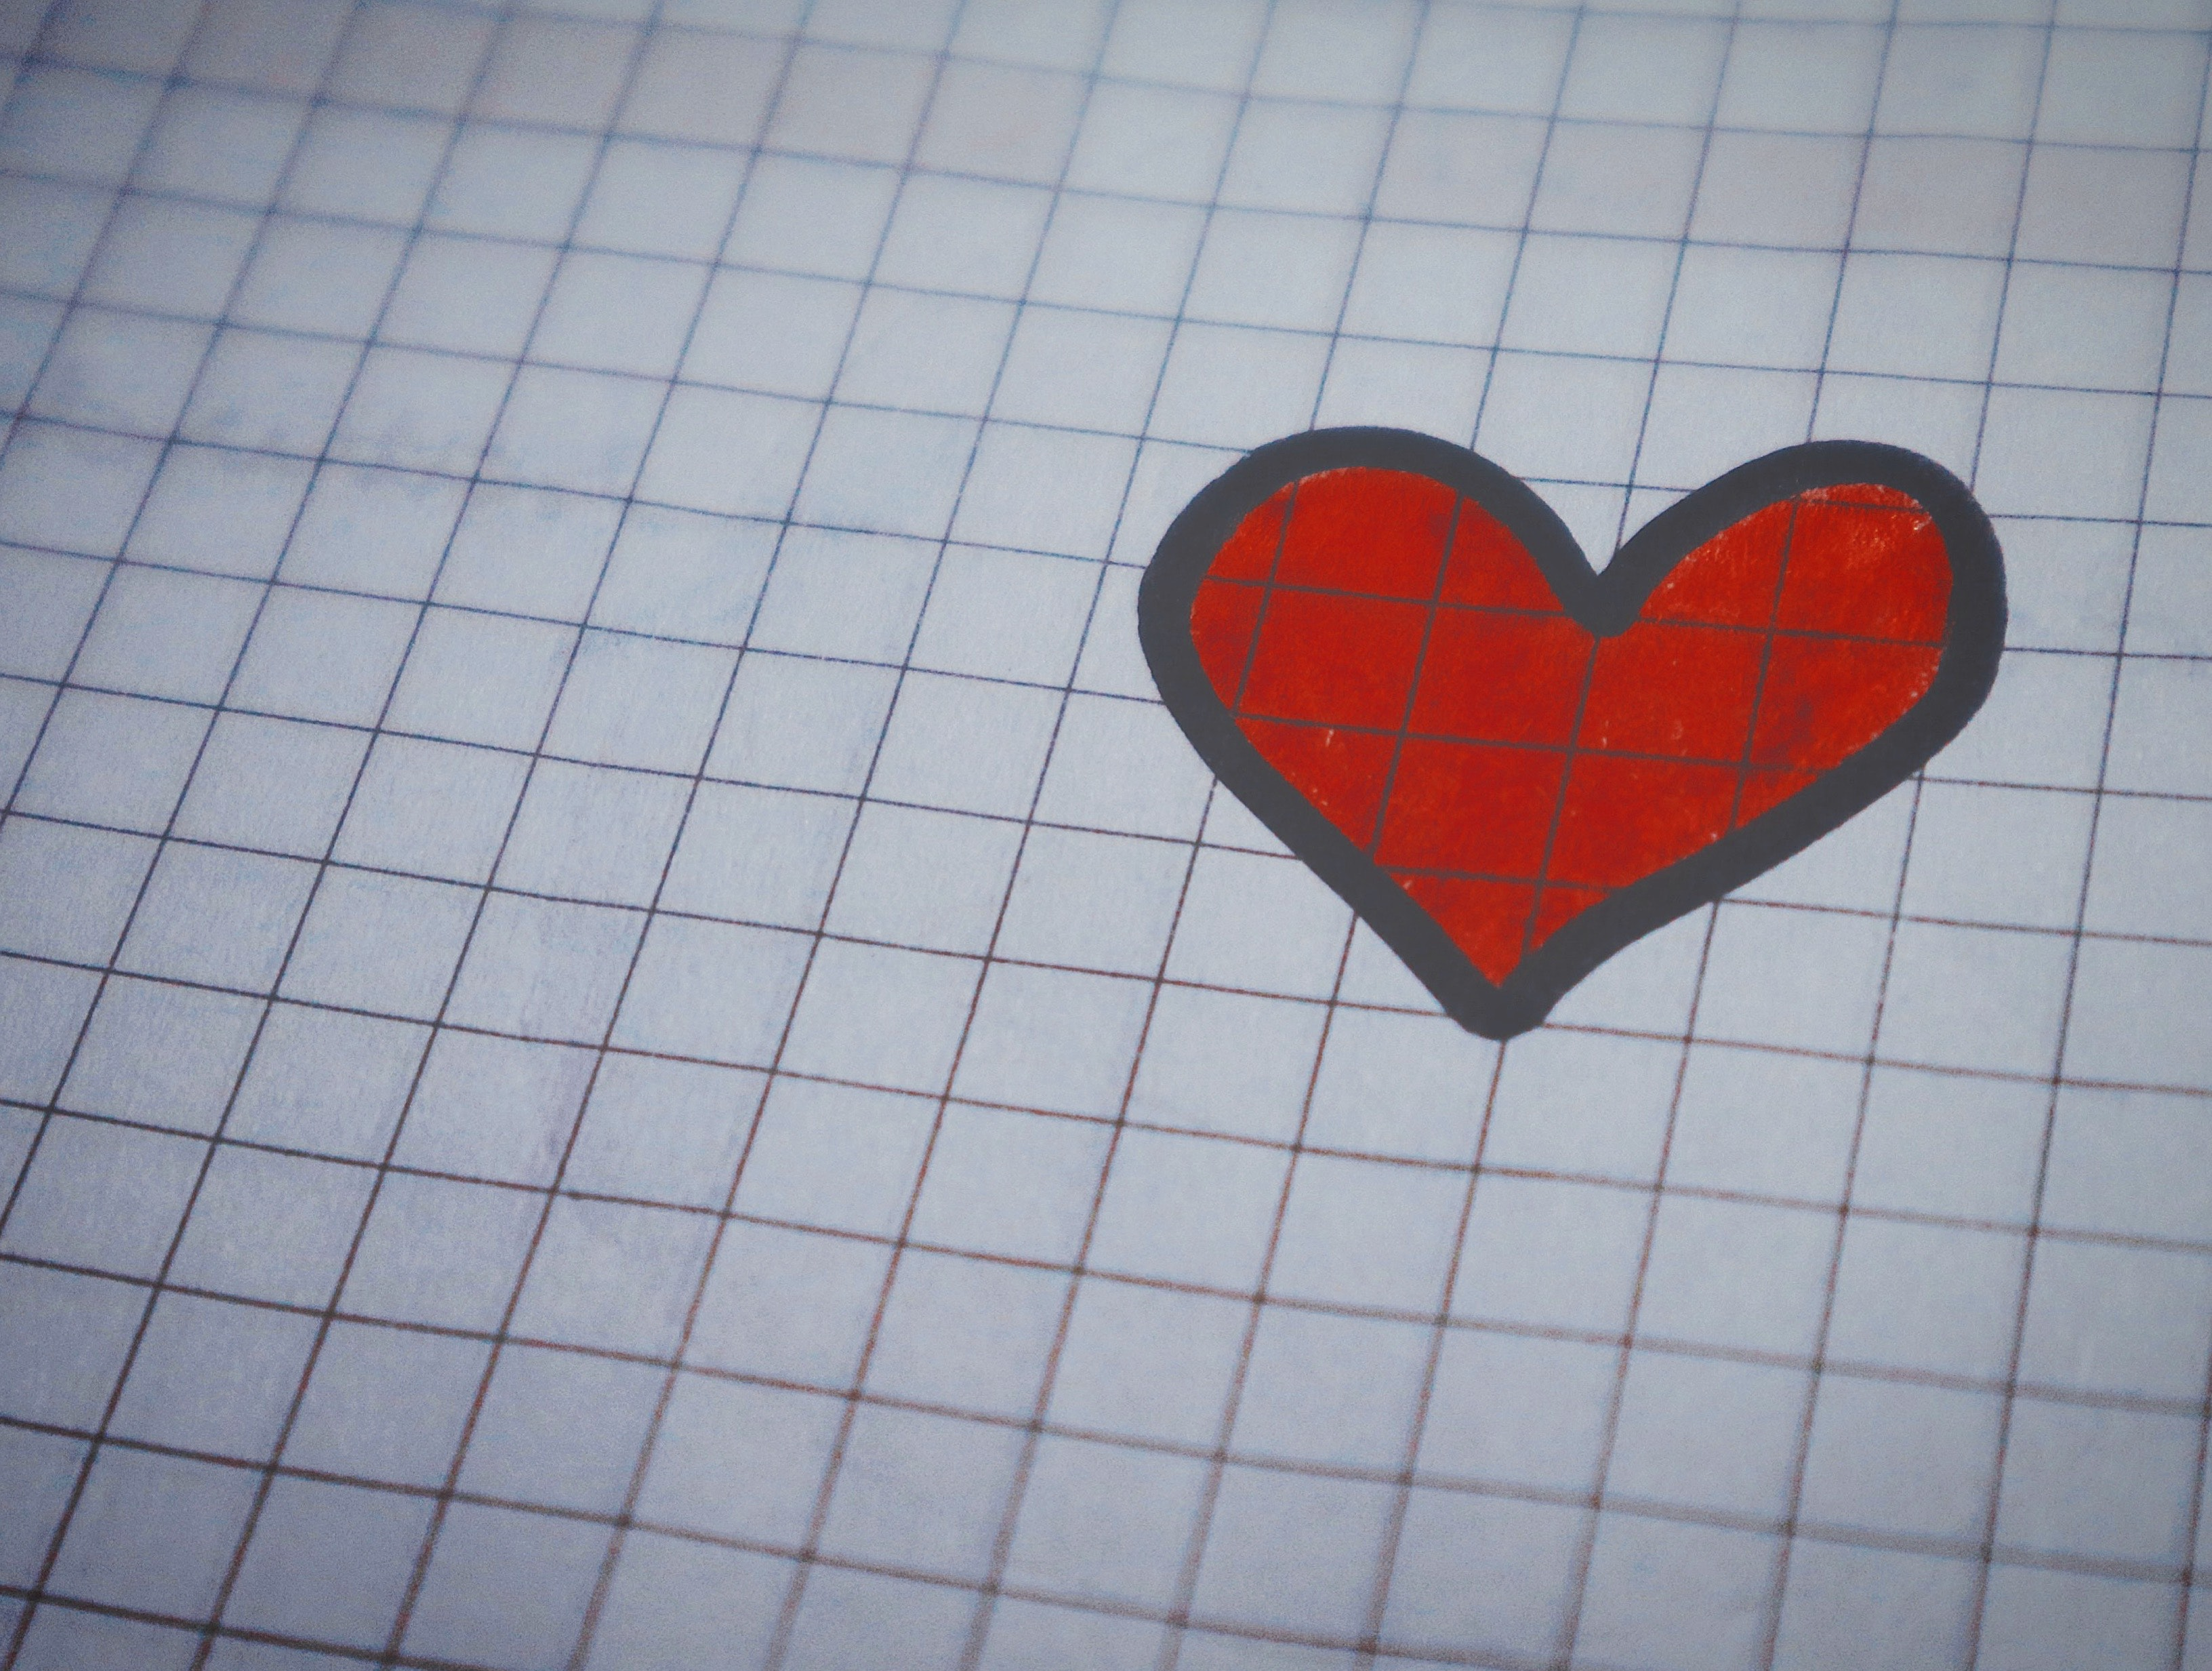 White page of graphing paper with red heart drawing photo